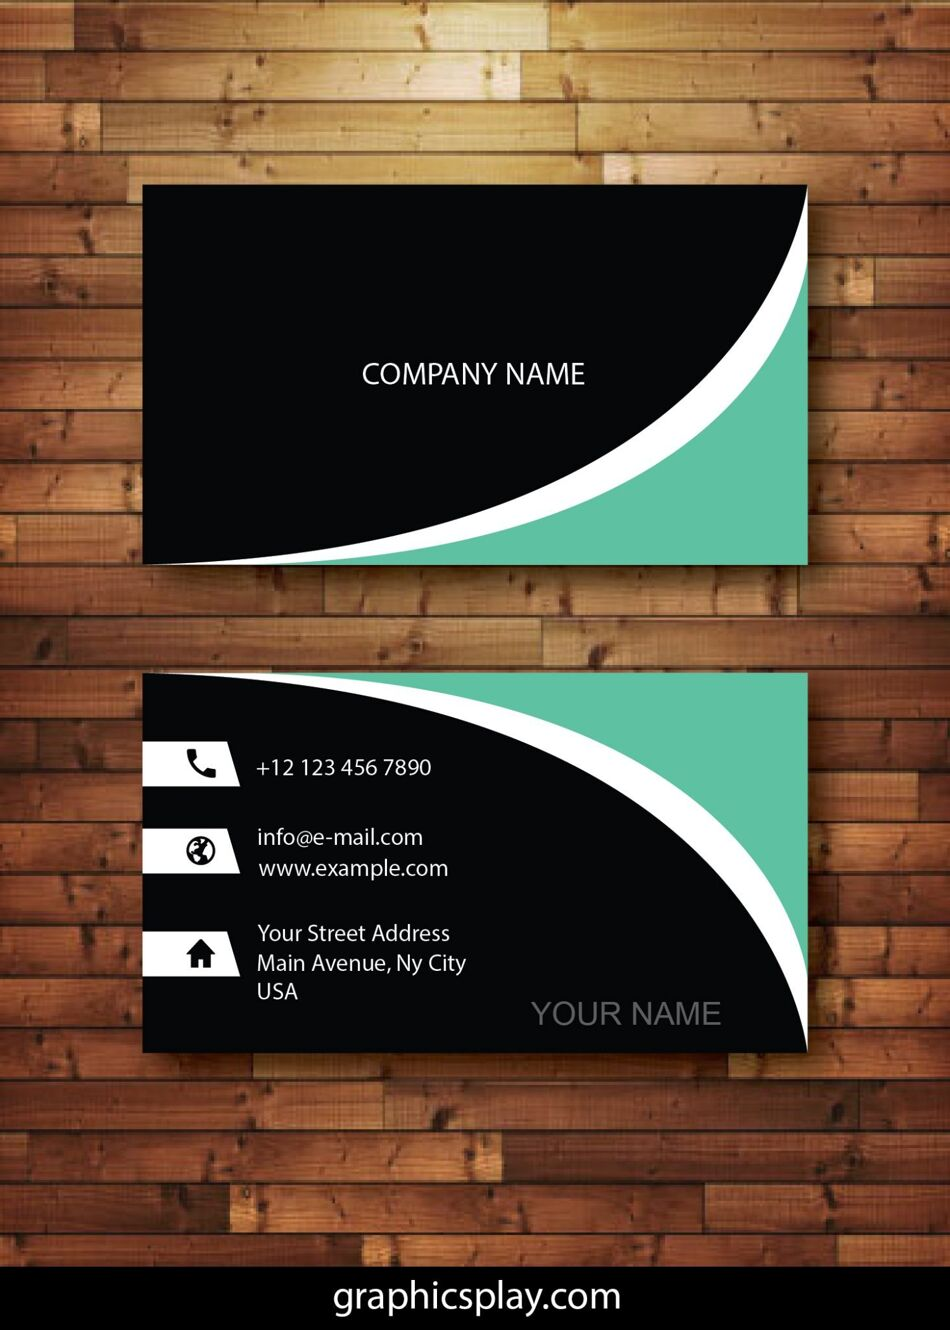 Business Card Design Vector Template - ID 4143 1